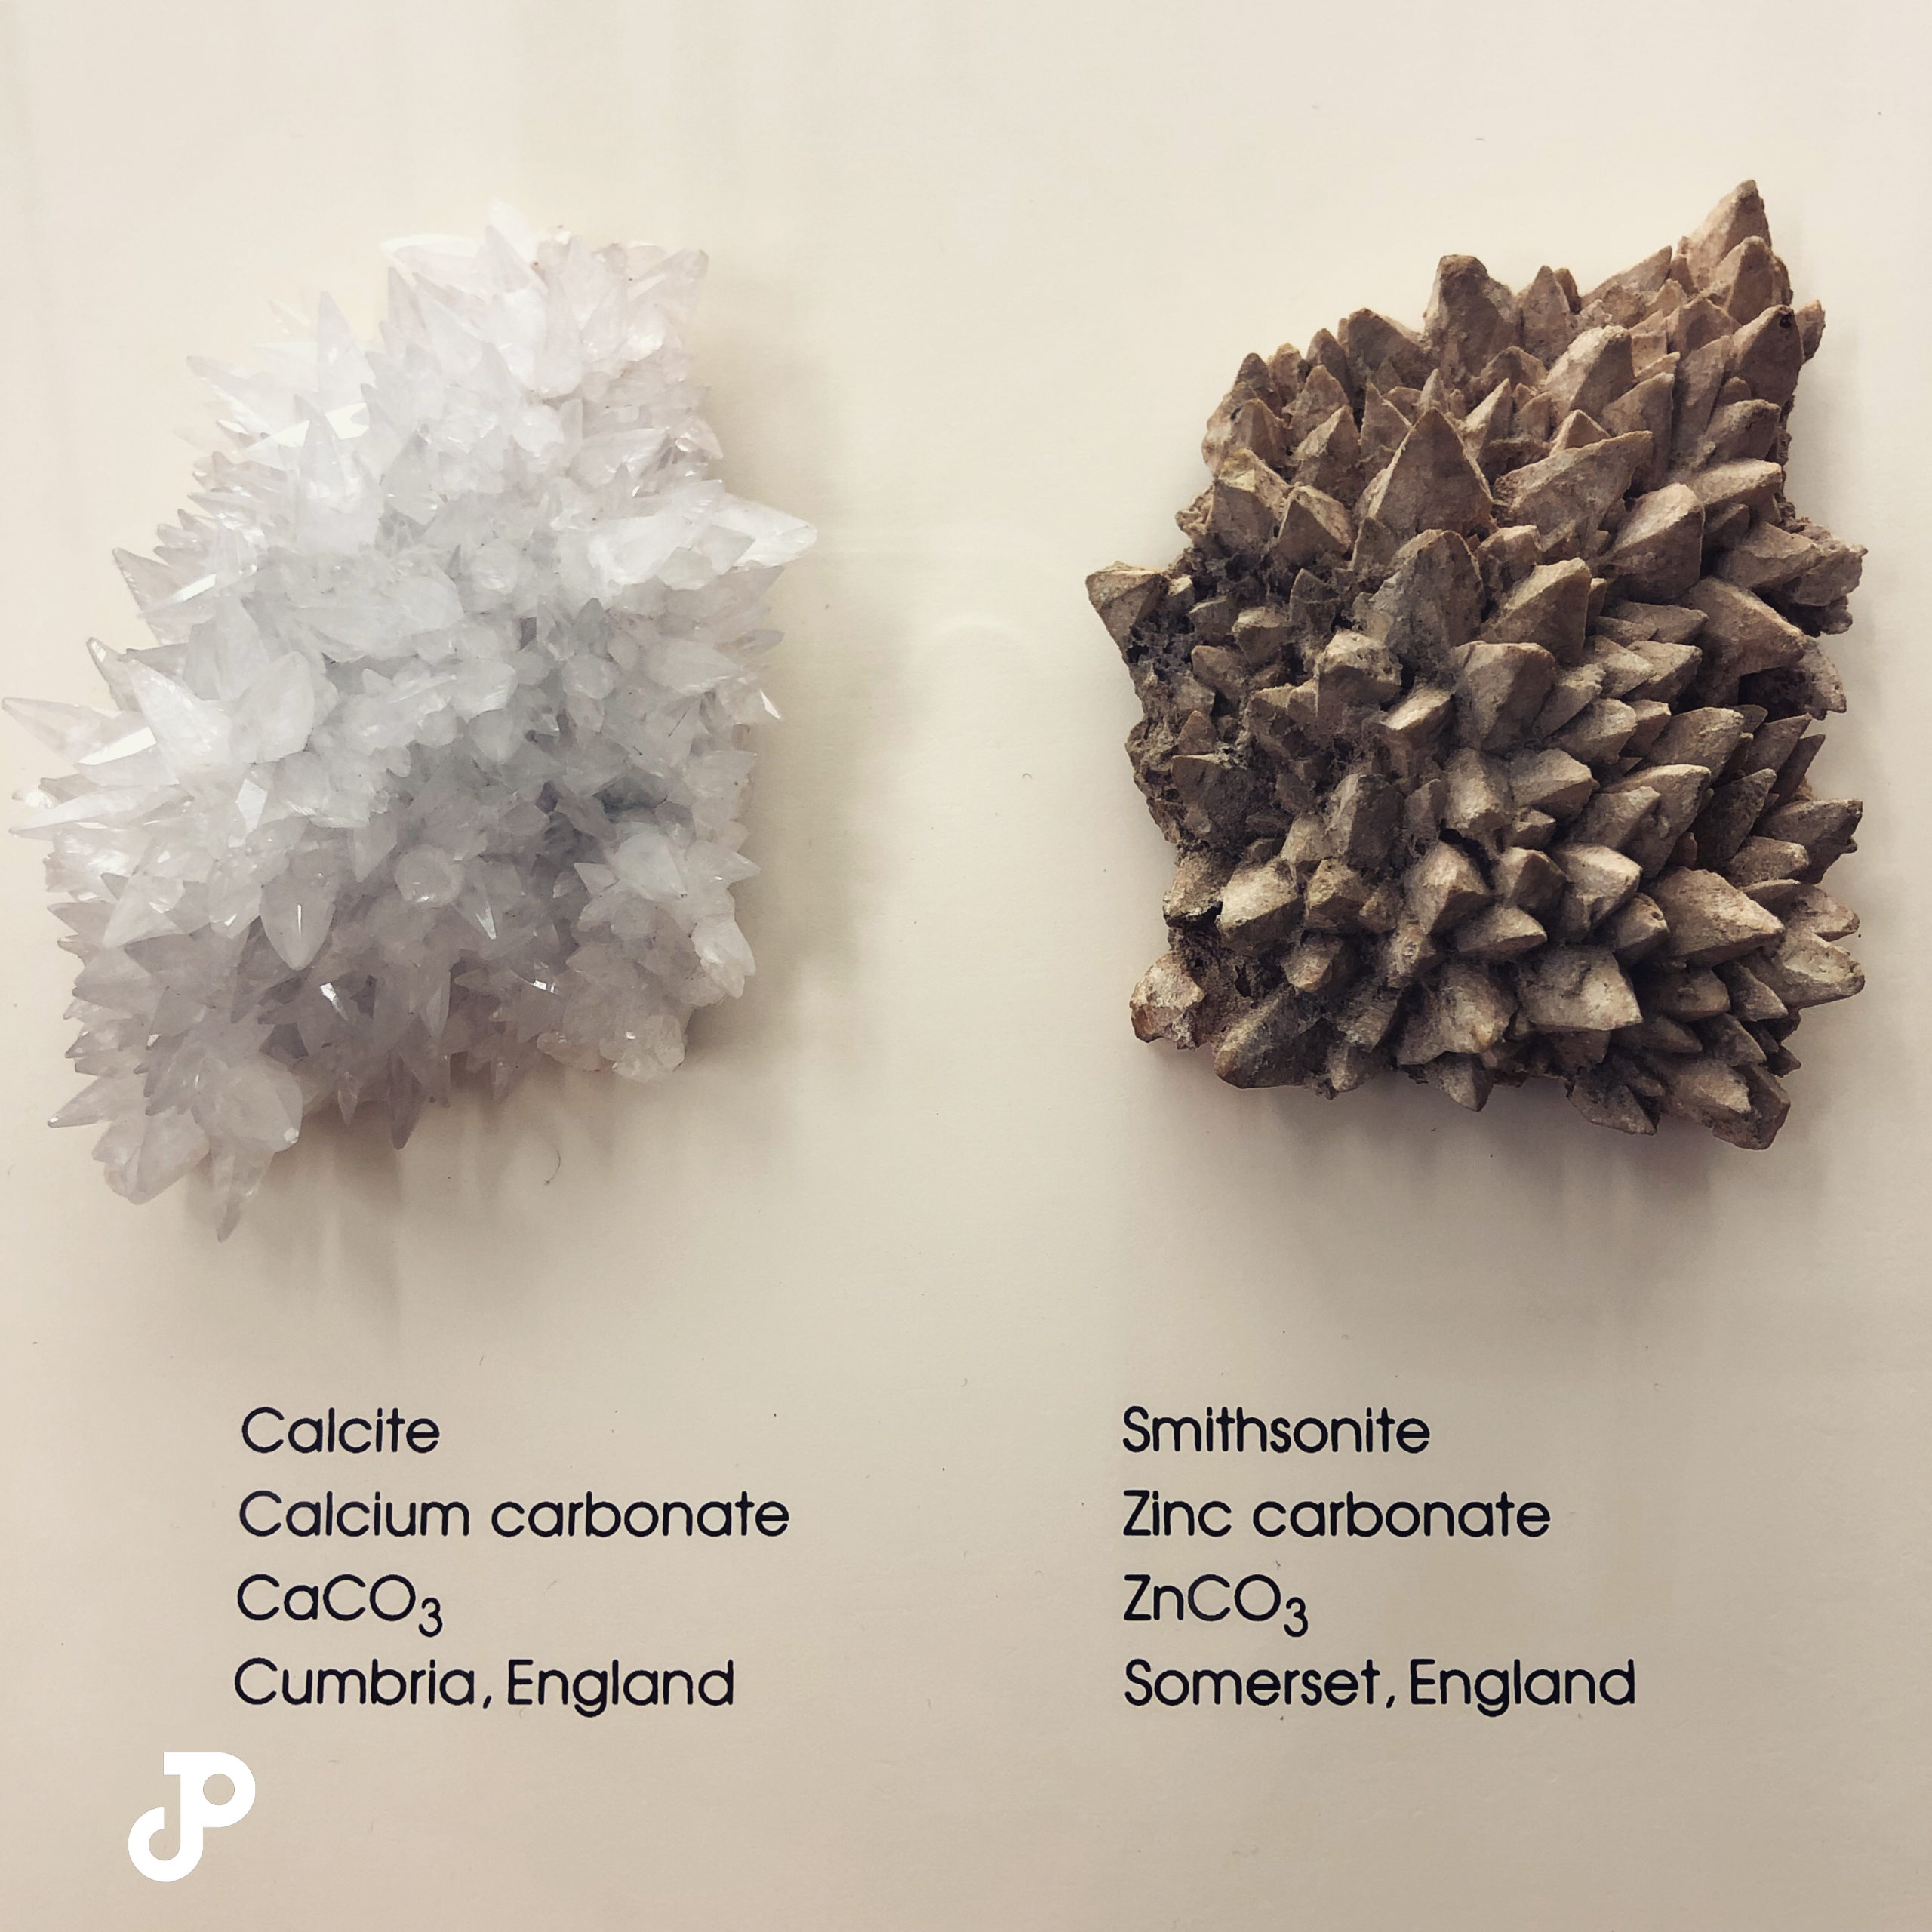 a geological display in the London Natural History Museum